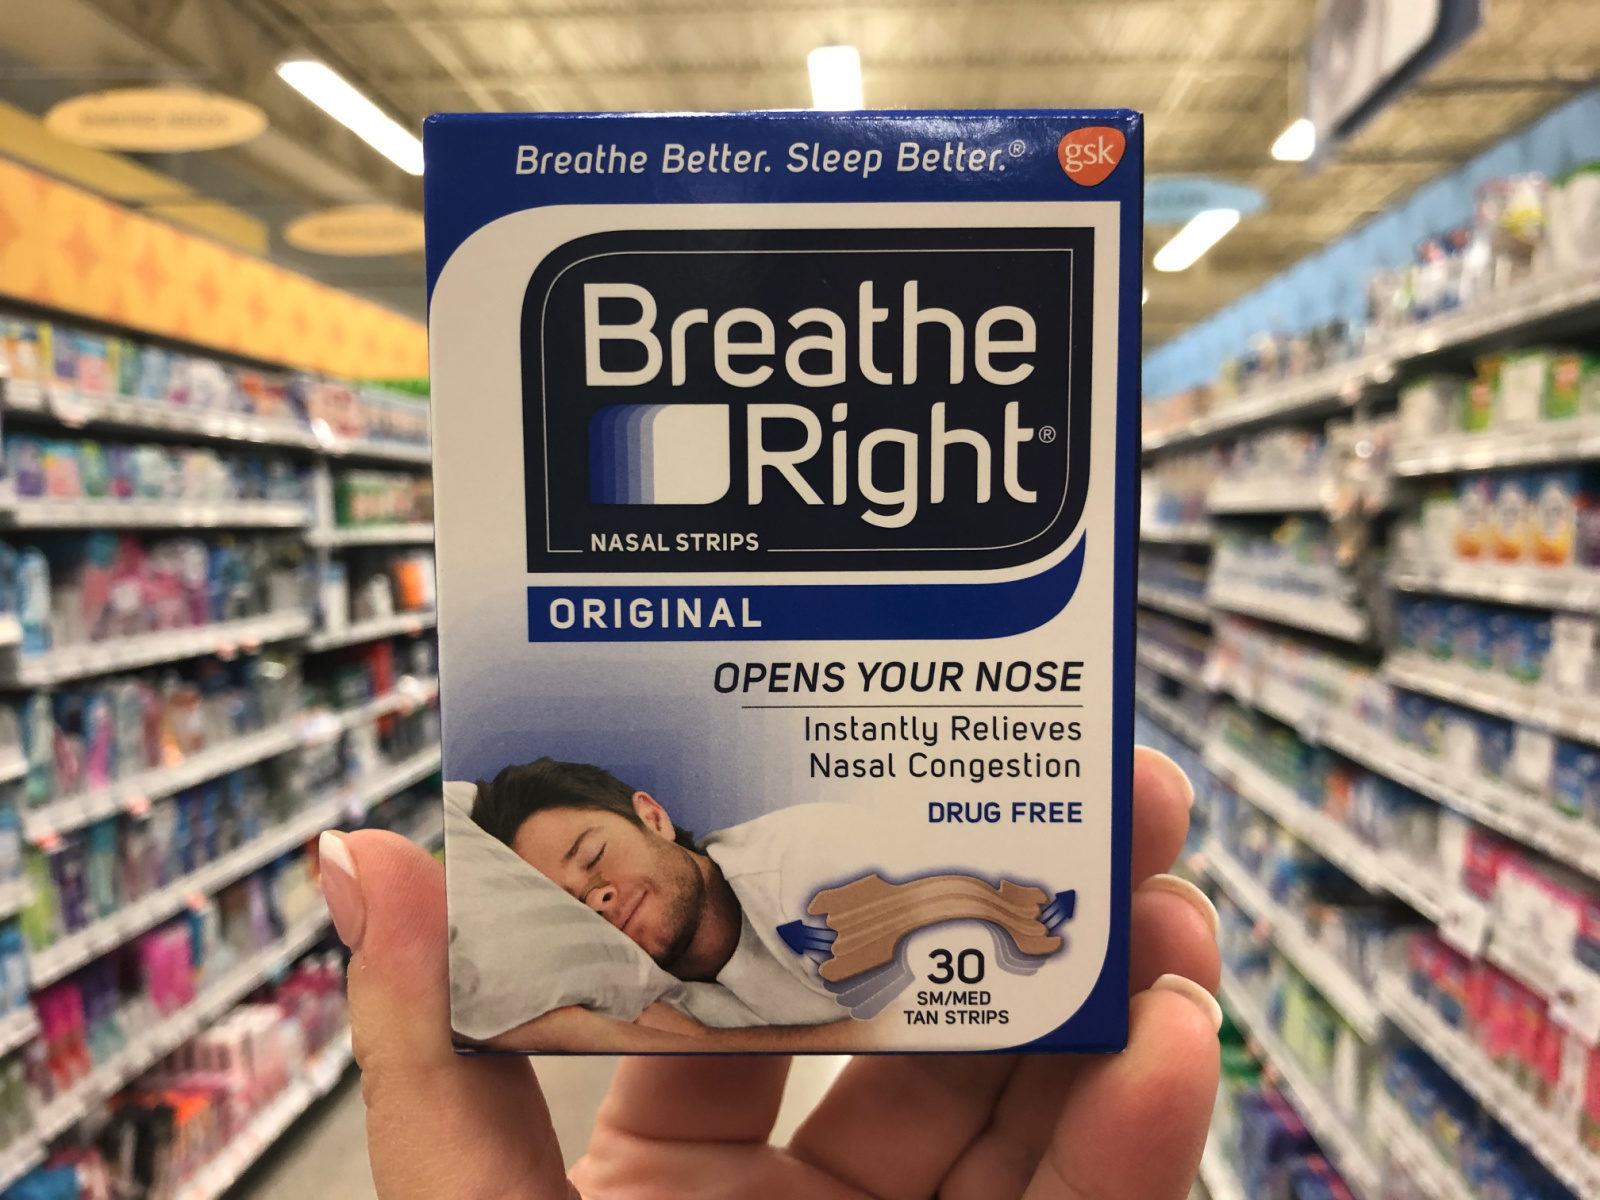 Breathe Right Nasal Strips Just $8.79 At Publix on I Heart Publix 1